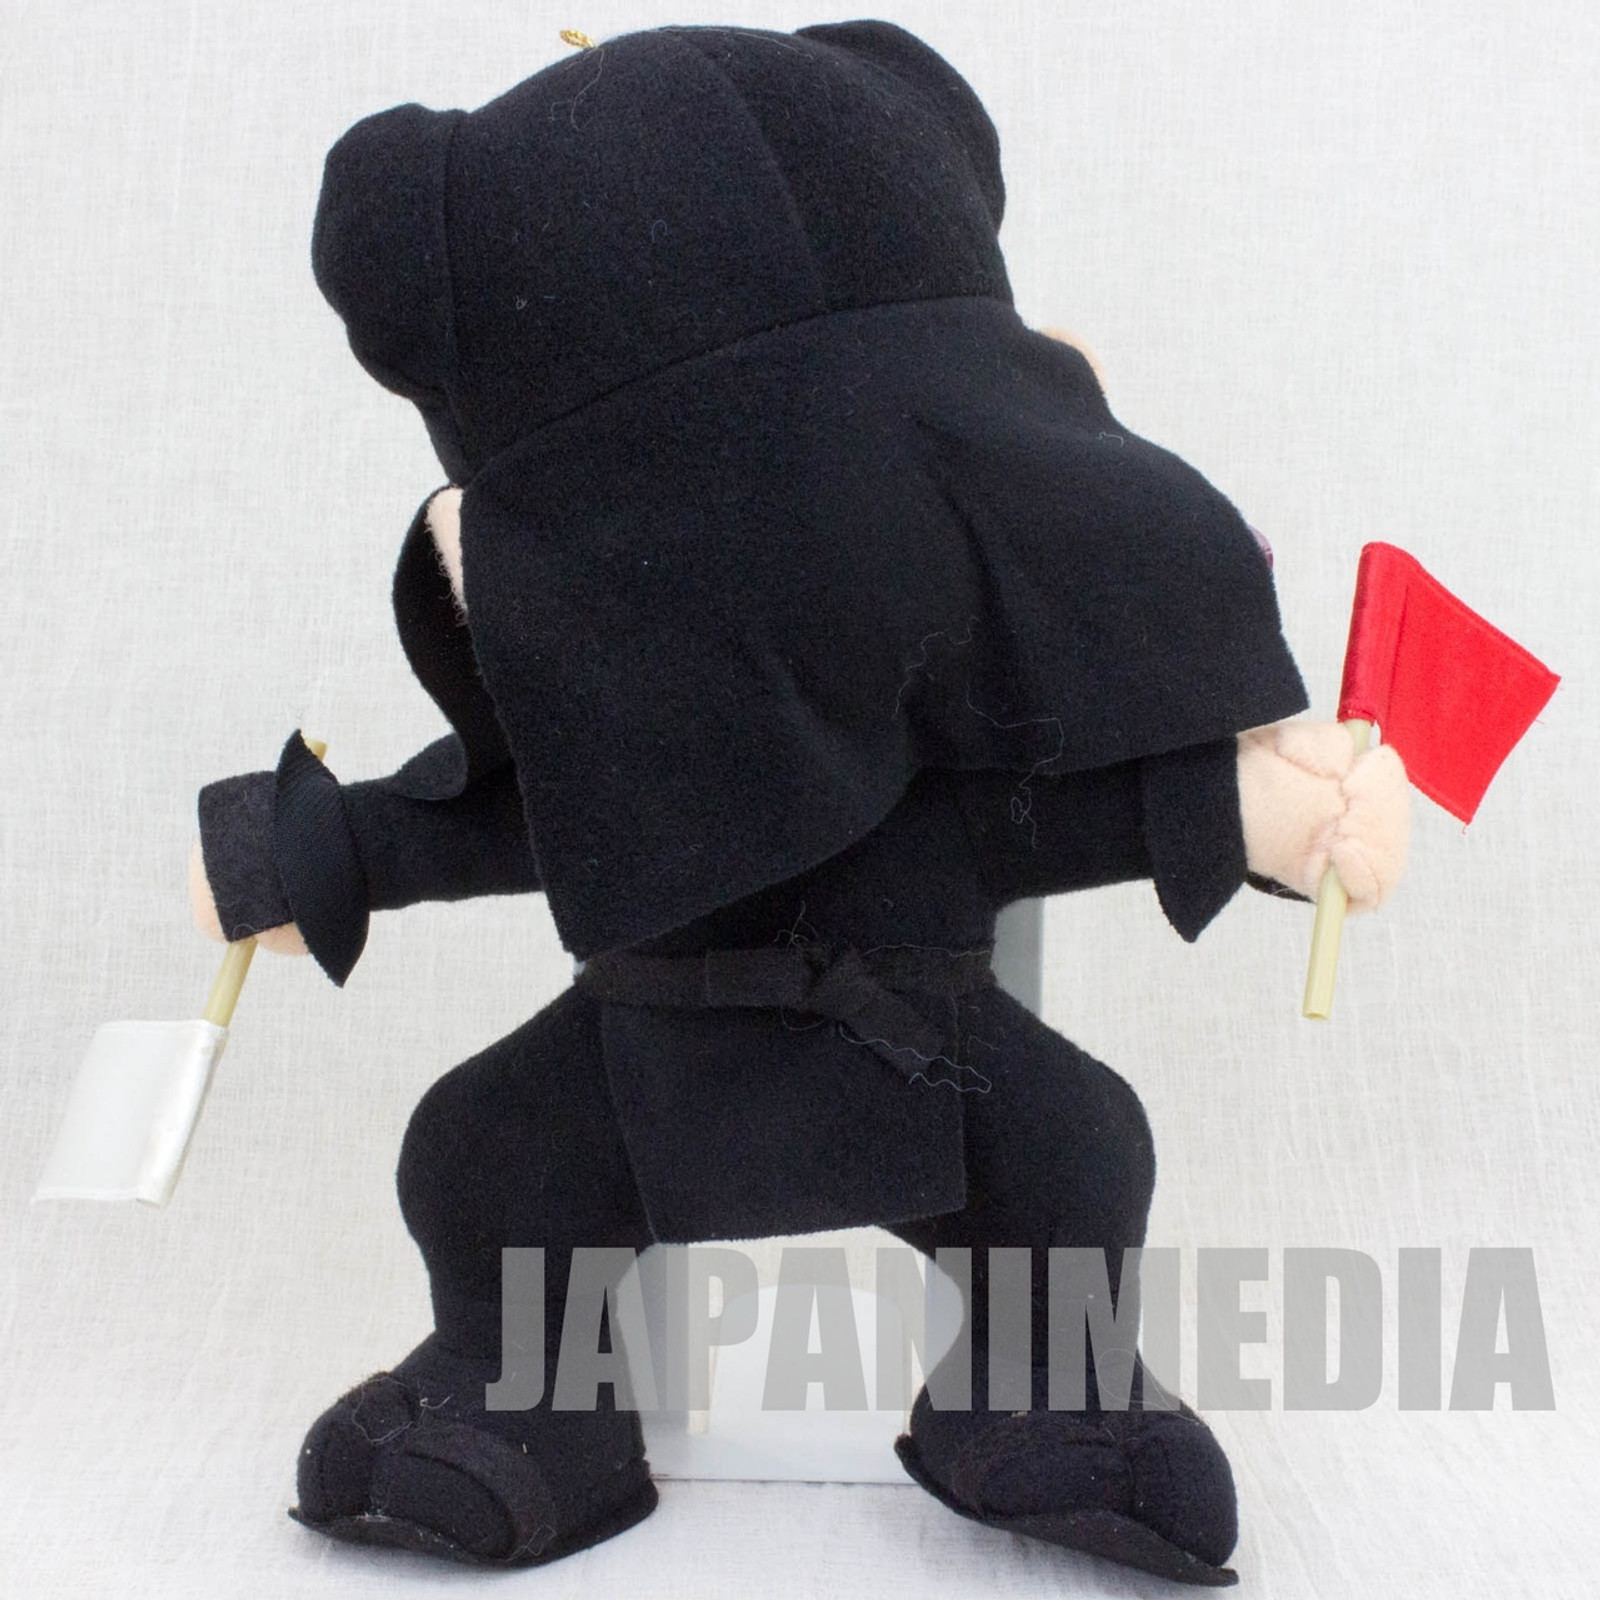 RARE! Samurai Shodown Kuroko Plush Doll SNK 1993 JAPAN GAME